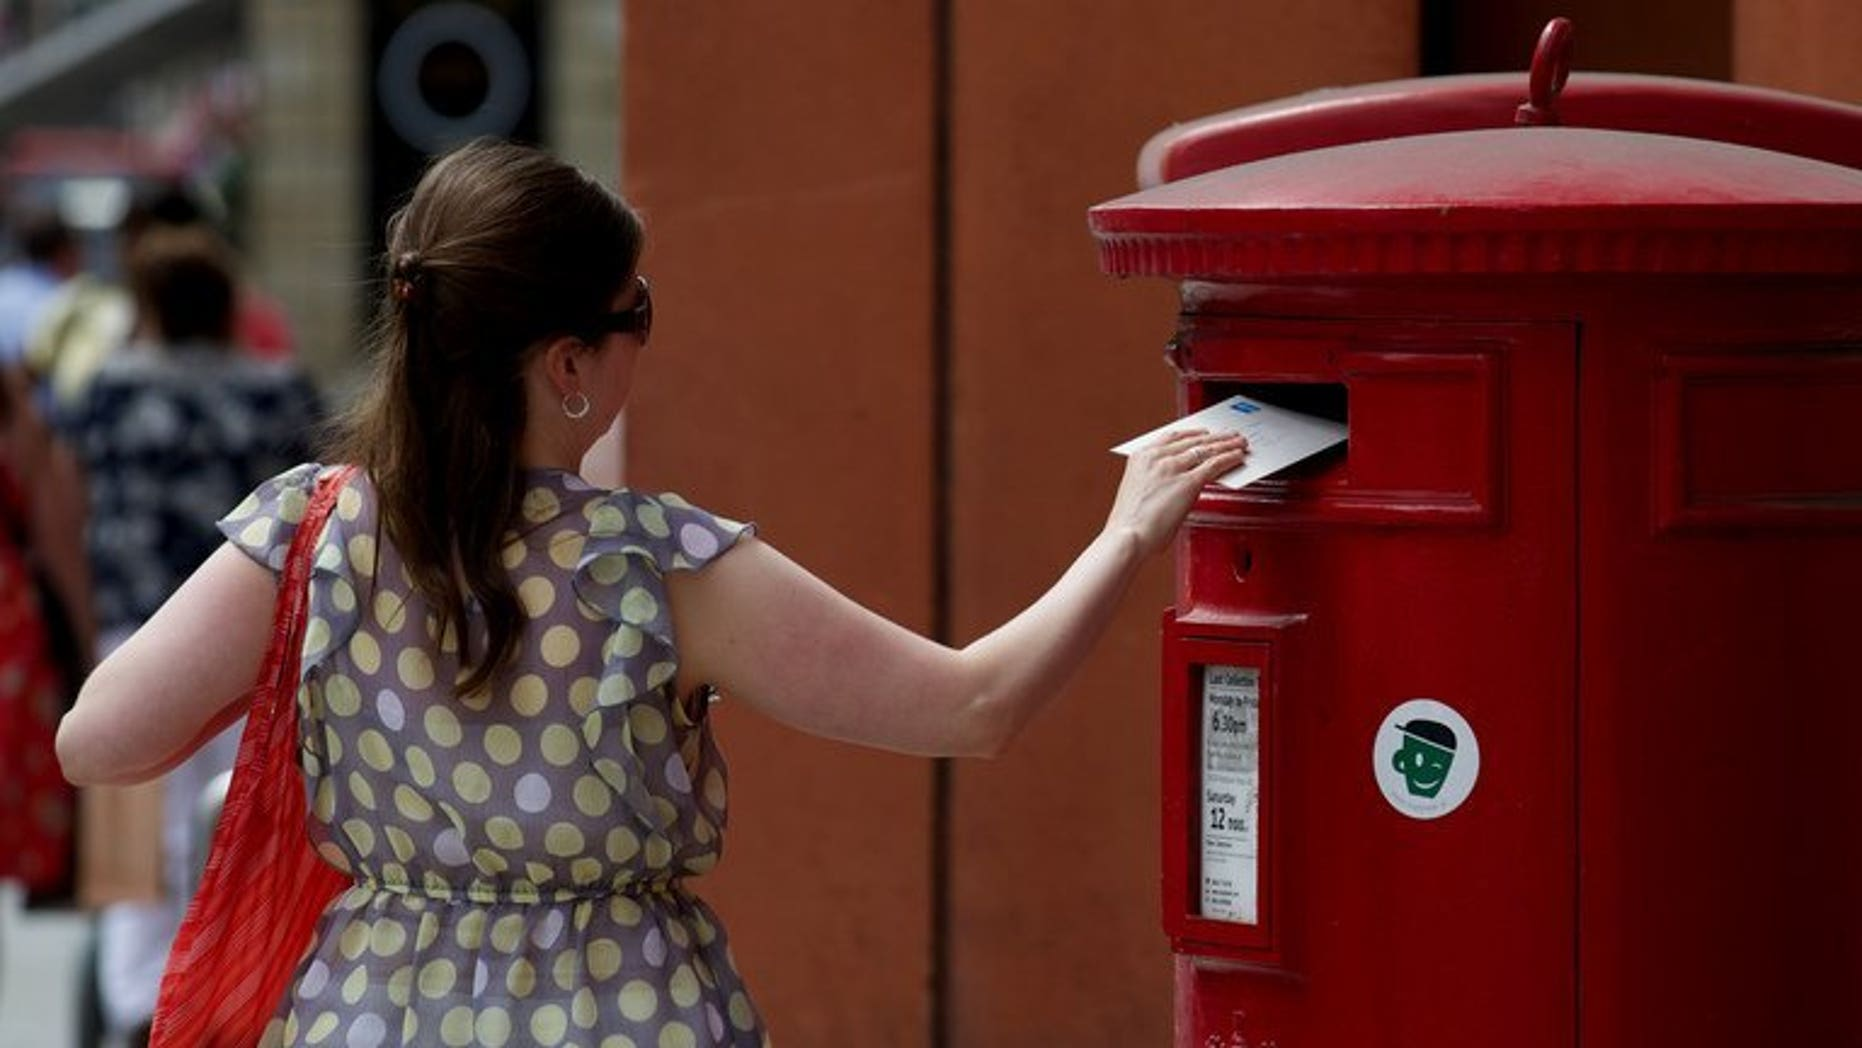 A woman posts a letter in a Royal Mail post box in London on July 10, 2013. Britain's government announced plans to privatise more than half of Royal Mail, the state-run postal delivery service, following a major restructuring in recent years triggered by a surge in email use.